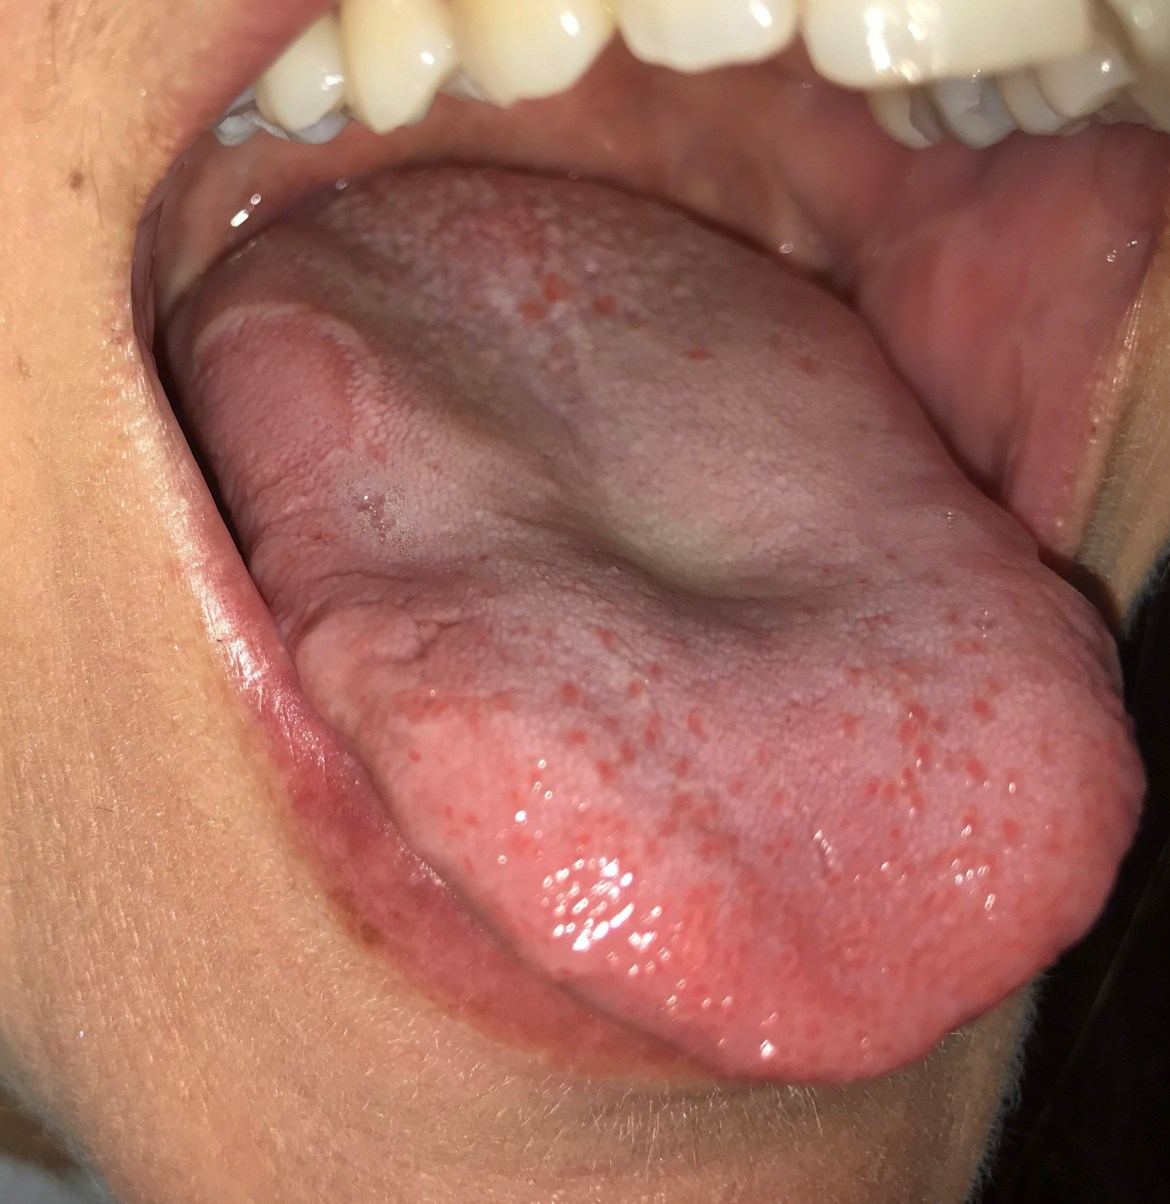 Professor Tim Spector, who runs the ZOE Covid Symptom Study app, warned he is seeing a rise in the number of people with 'Covid tongue'